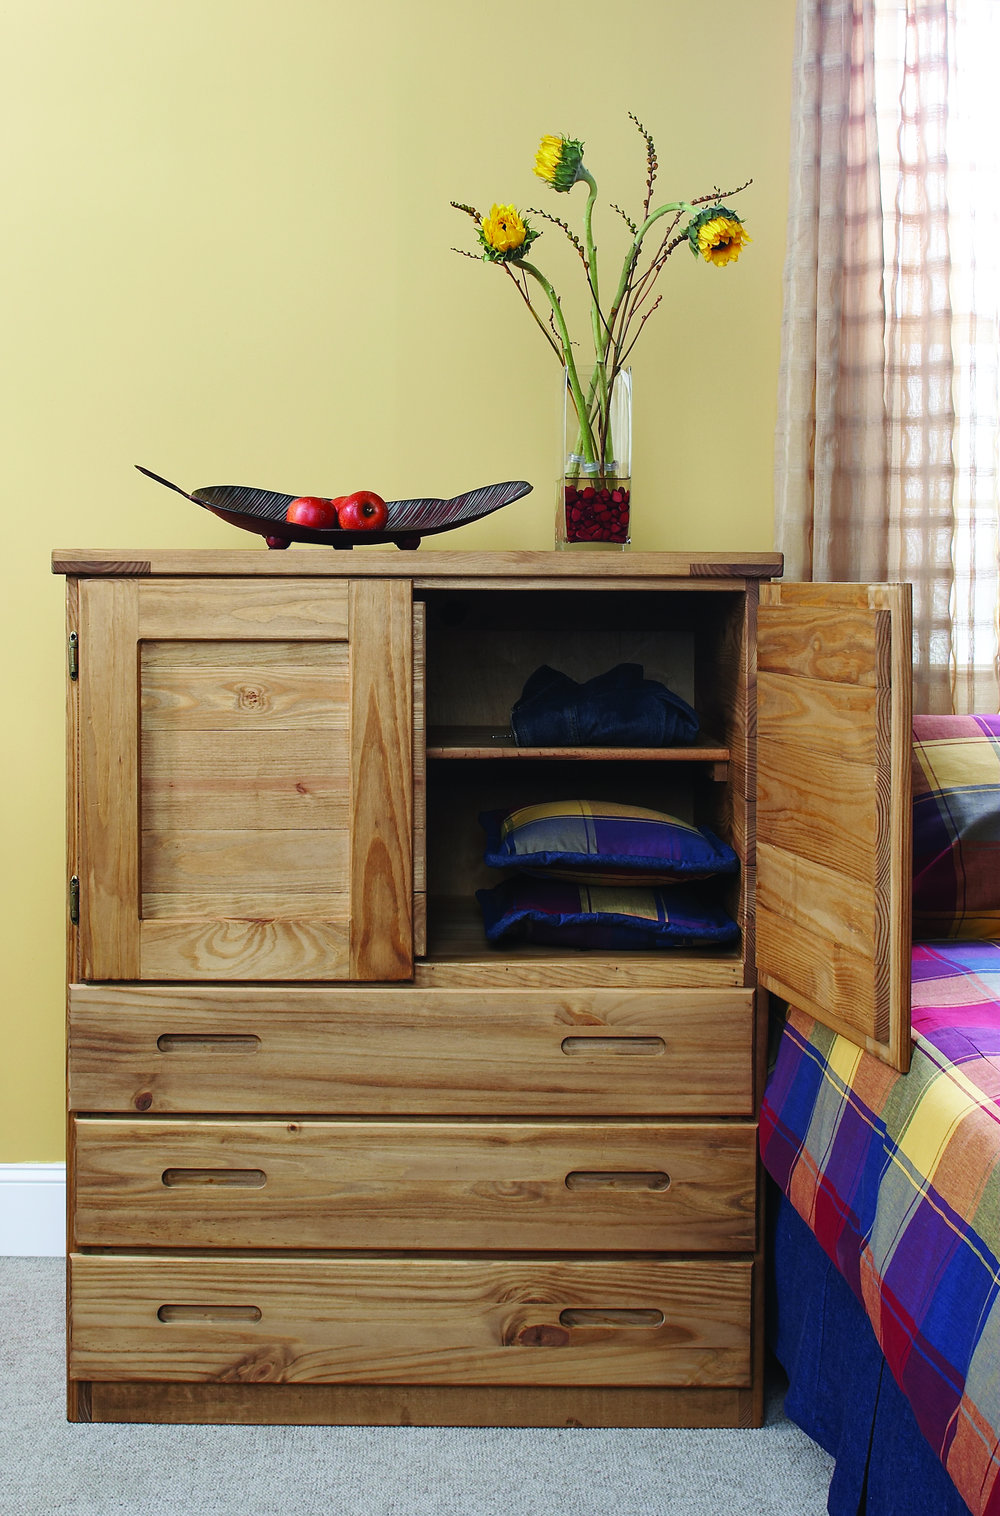 BACHELORS CHEST WITH NATURAL FINISH, list price $875